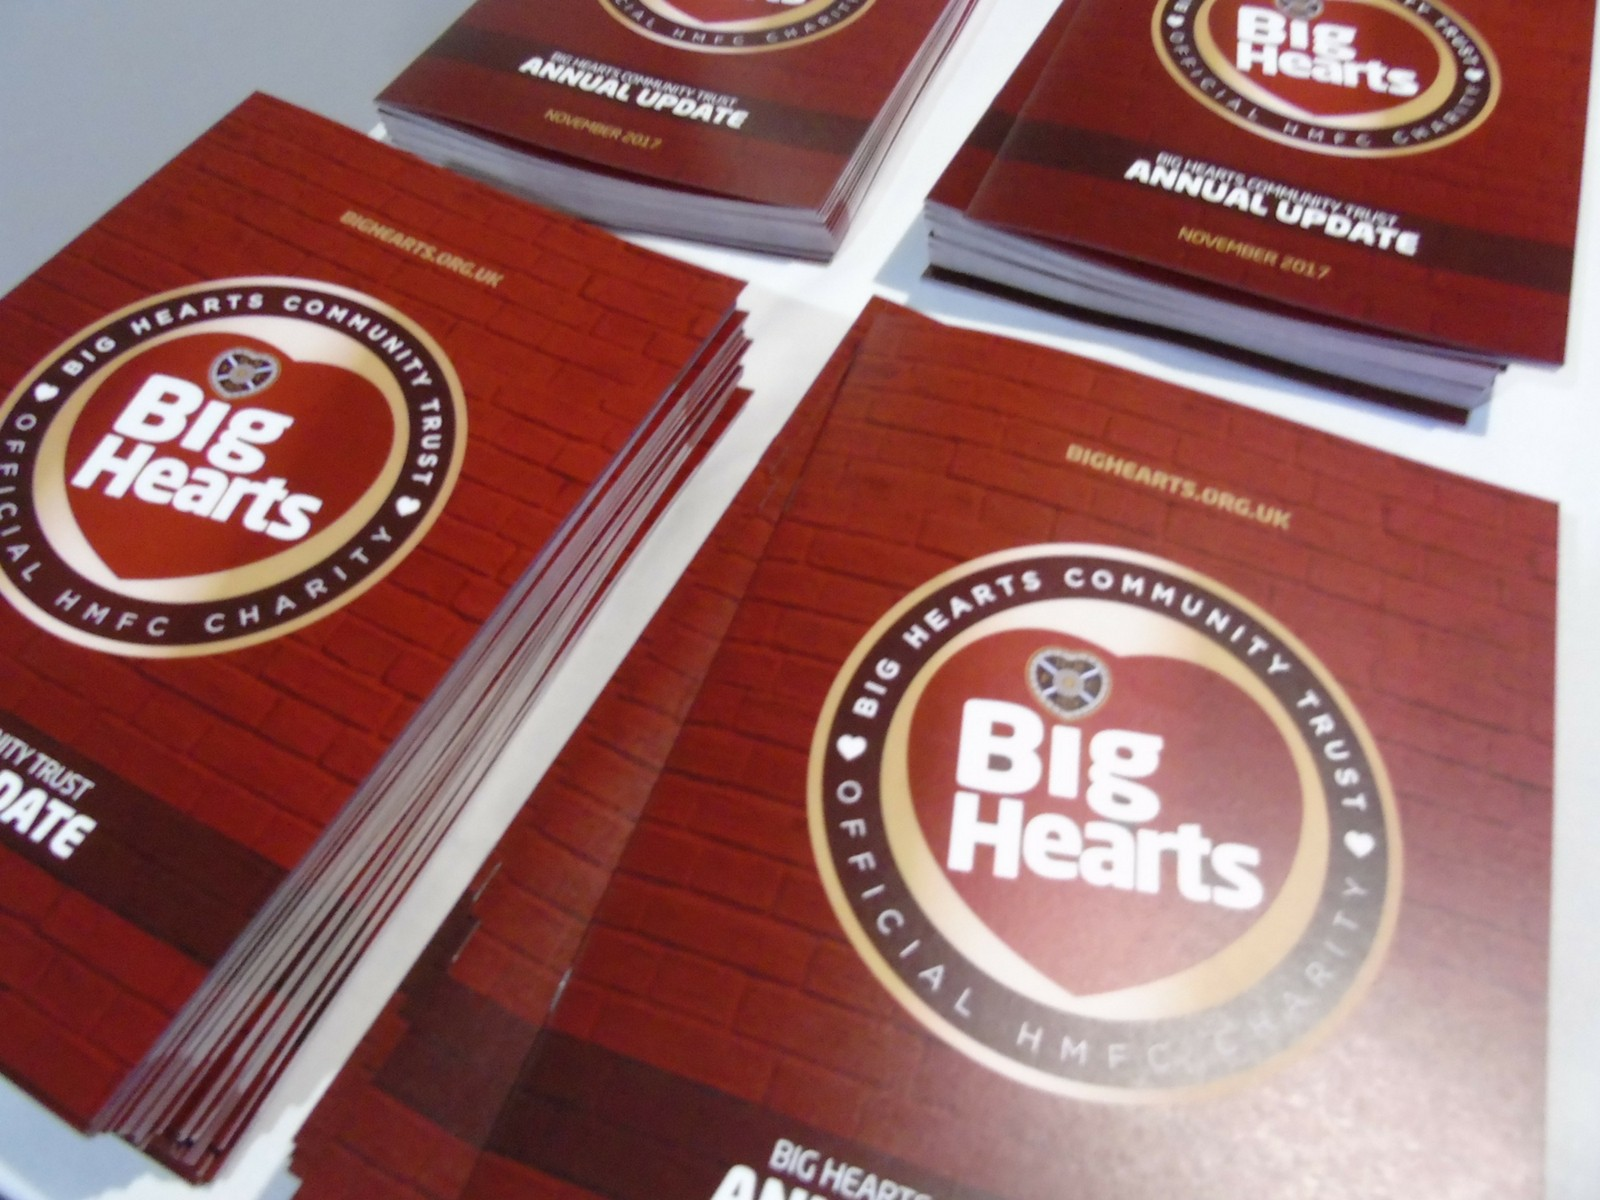 » Big Hearts 2017 Annual Update is out!